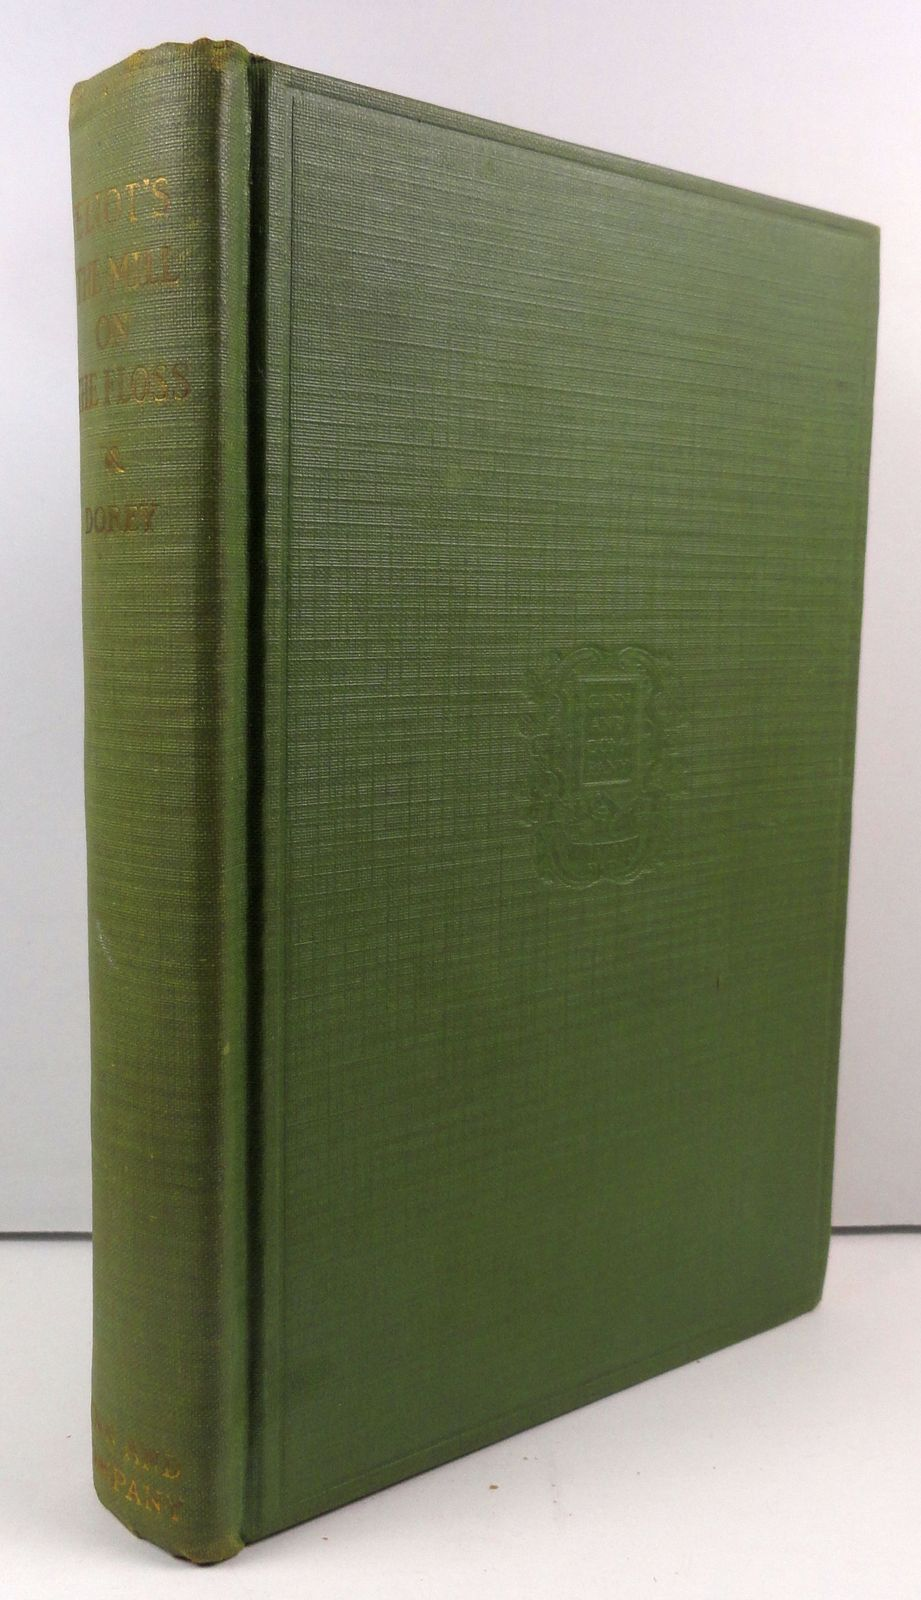 The Mill on the Floss by George Eliot, J. Milnor Dorey Editor